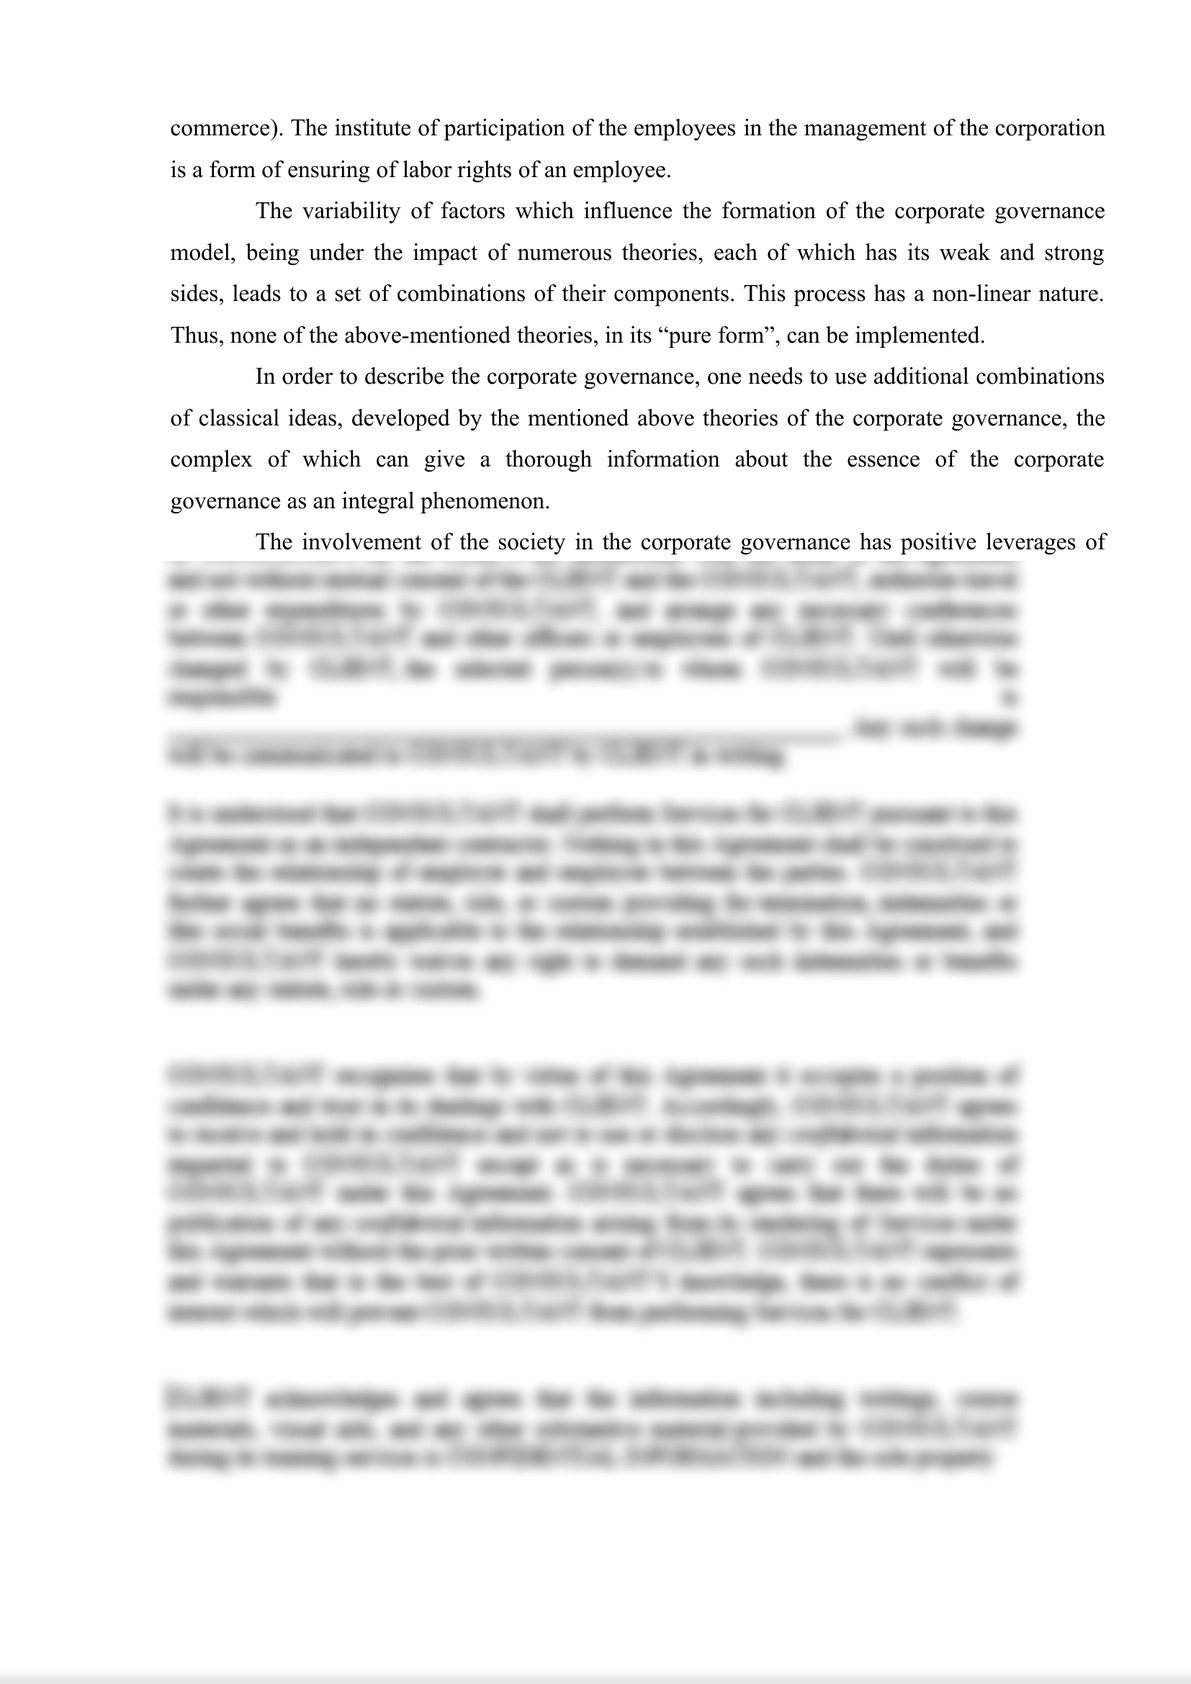 LEGAL ASPECTS OF THE CORPORATE GOVERNANCE-5